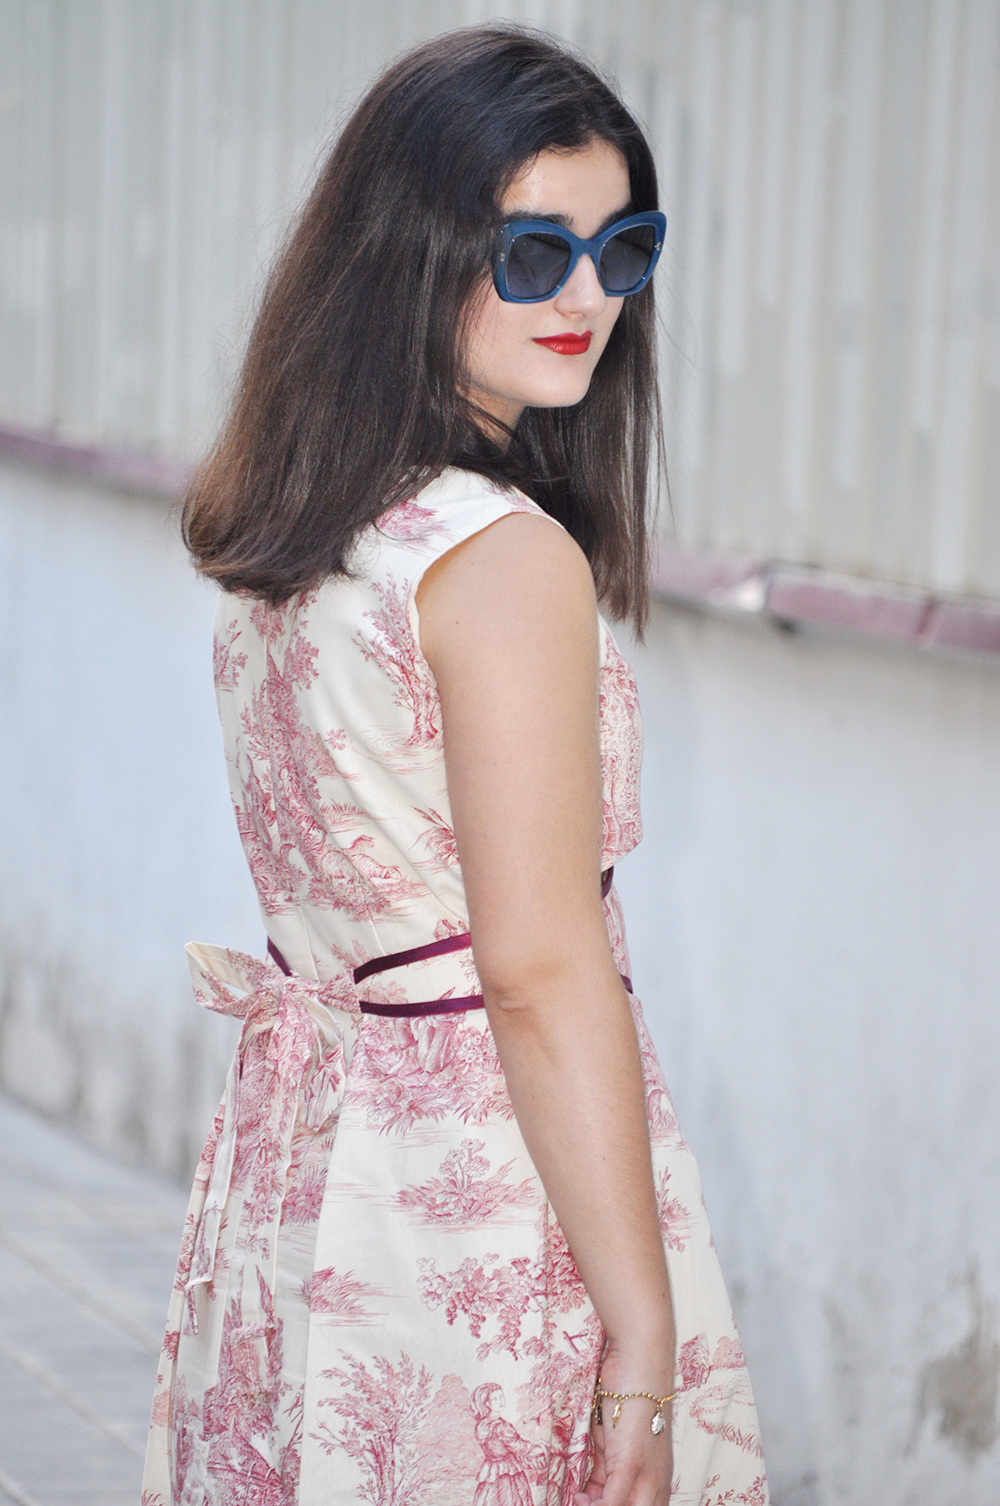 design your own dress clothing, seamstress, valencia fashion blogger somethingfashion moda estilo diseño, dolce gabbana blue sunnies birking bag hermes, how to design your toile de jouy dress, vestido vintage toiledejouy A-line